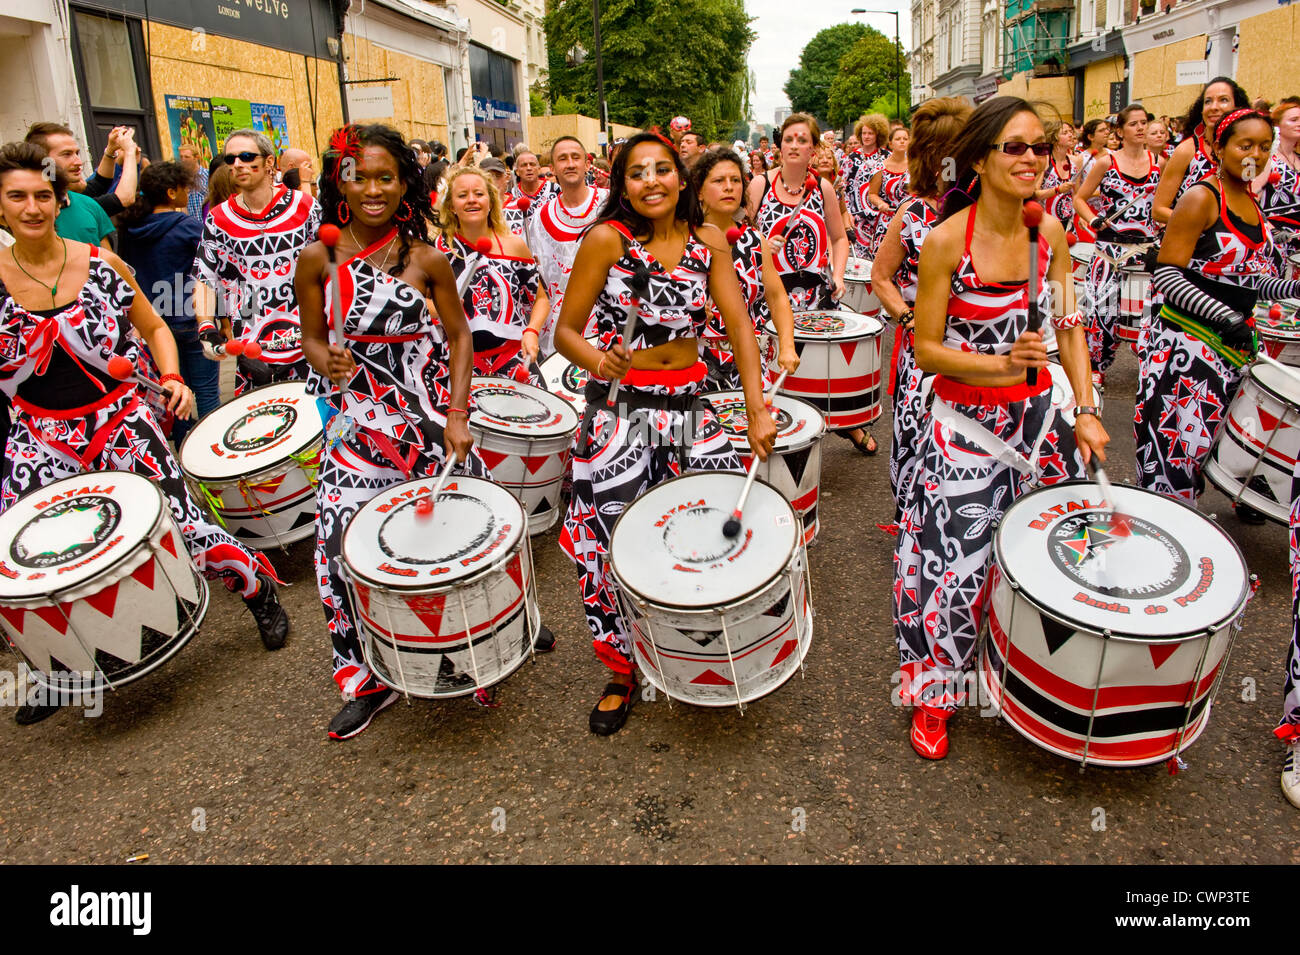 Batala a type of Brazilian drumming - band members drawn from 25 nations The Notting Hill Carnival 2012 - Stock Image